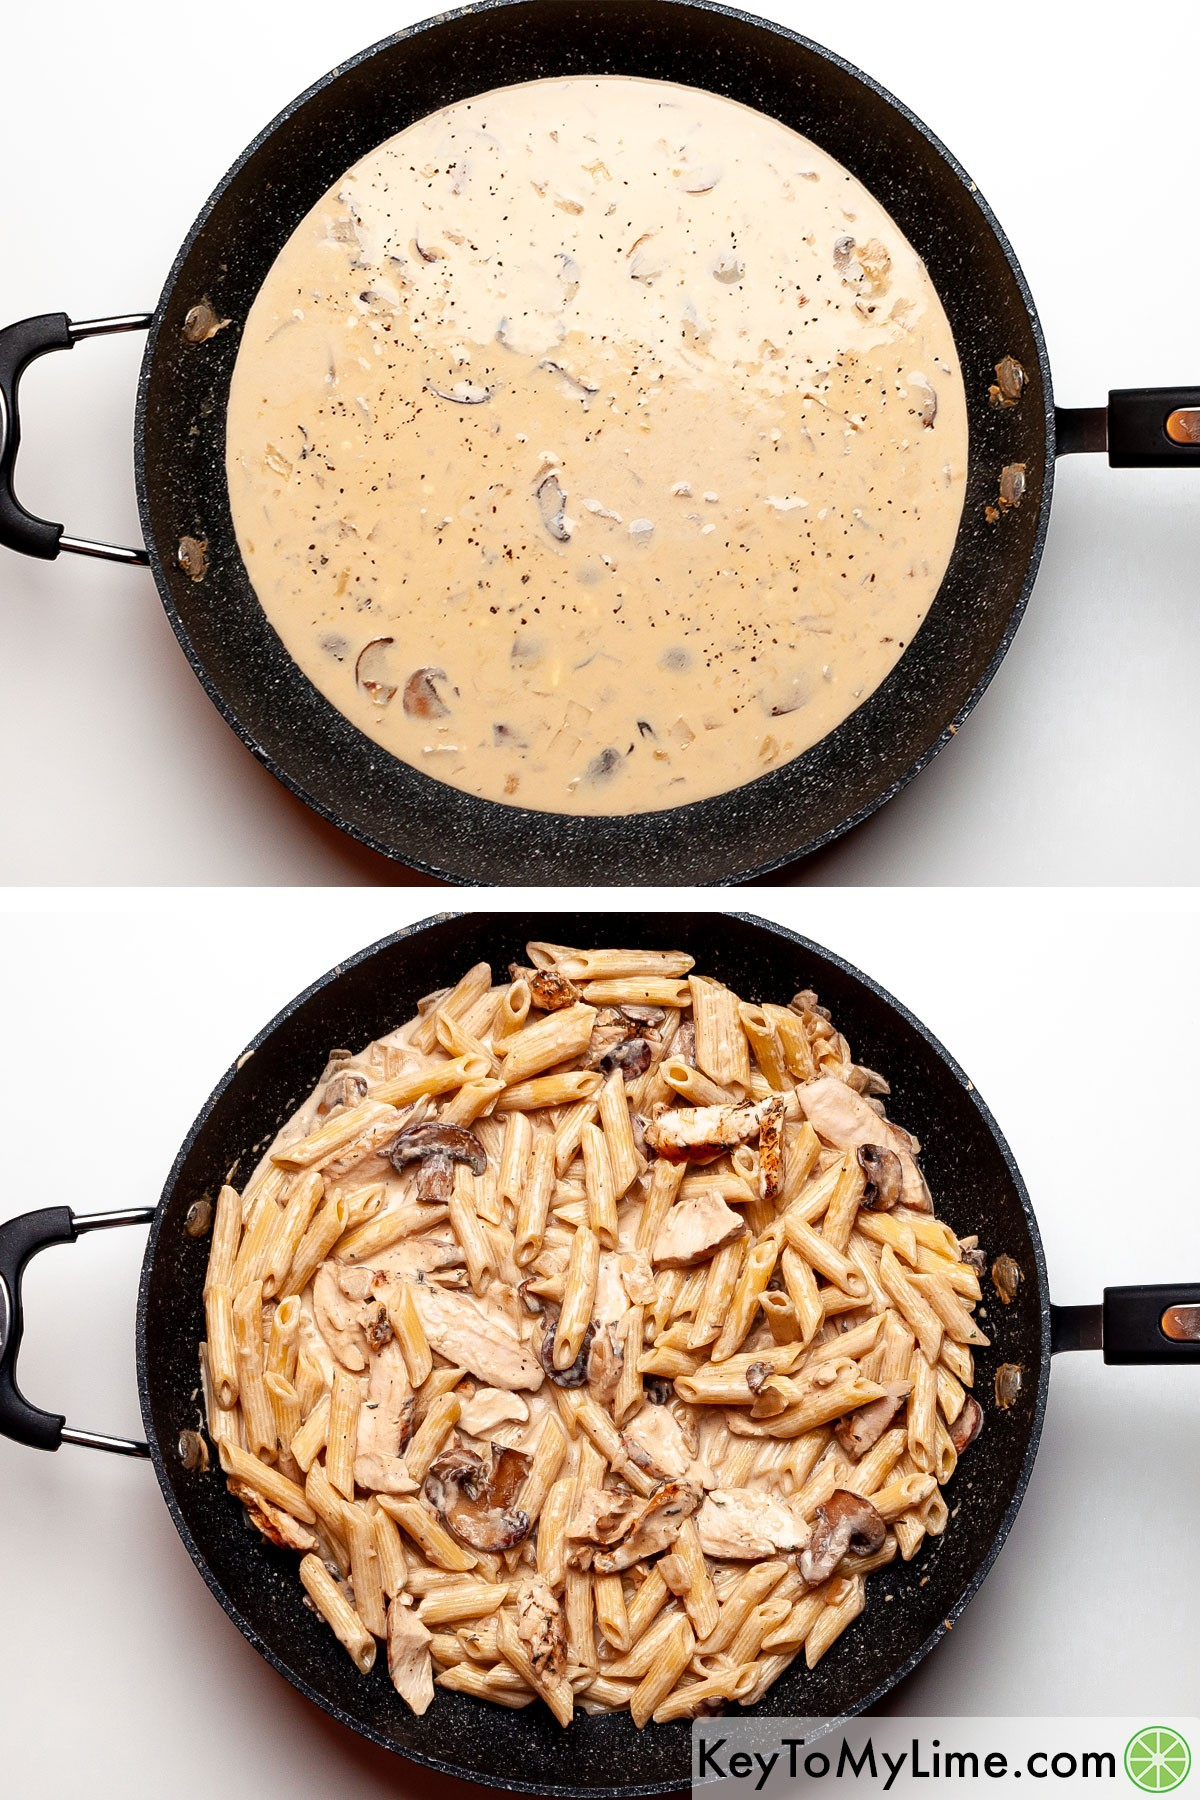 A process photo of making creamy mushroom pasta sauce and then tossing penne pasta in it.